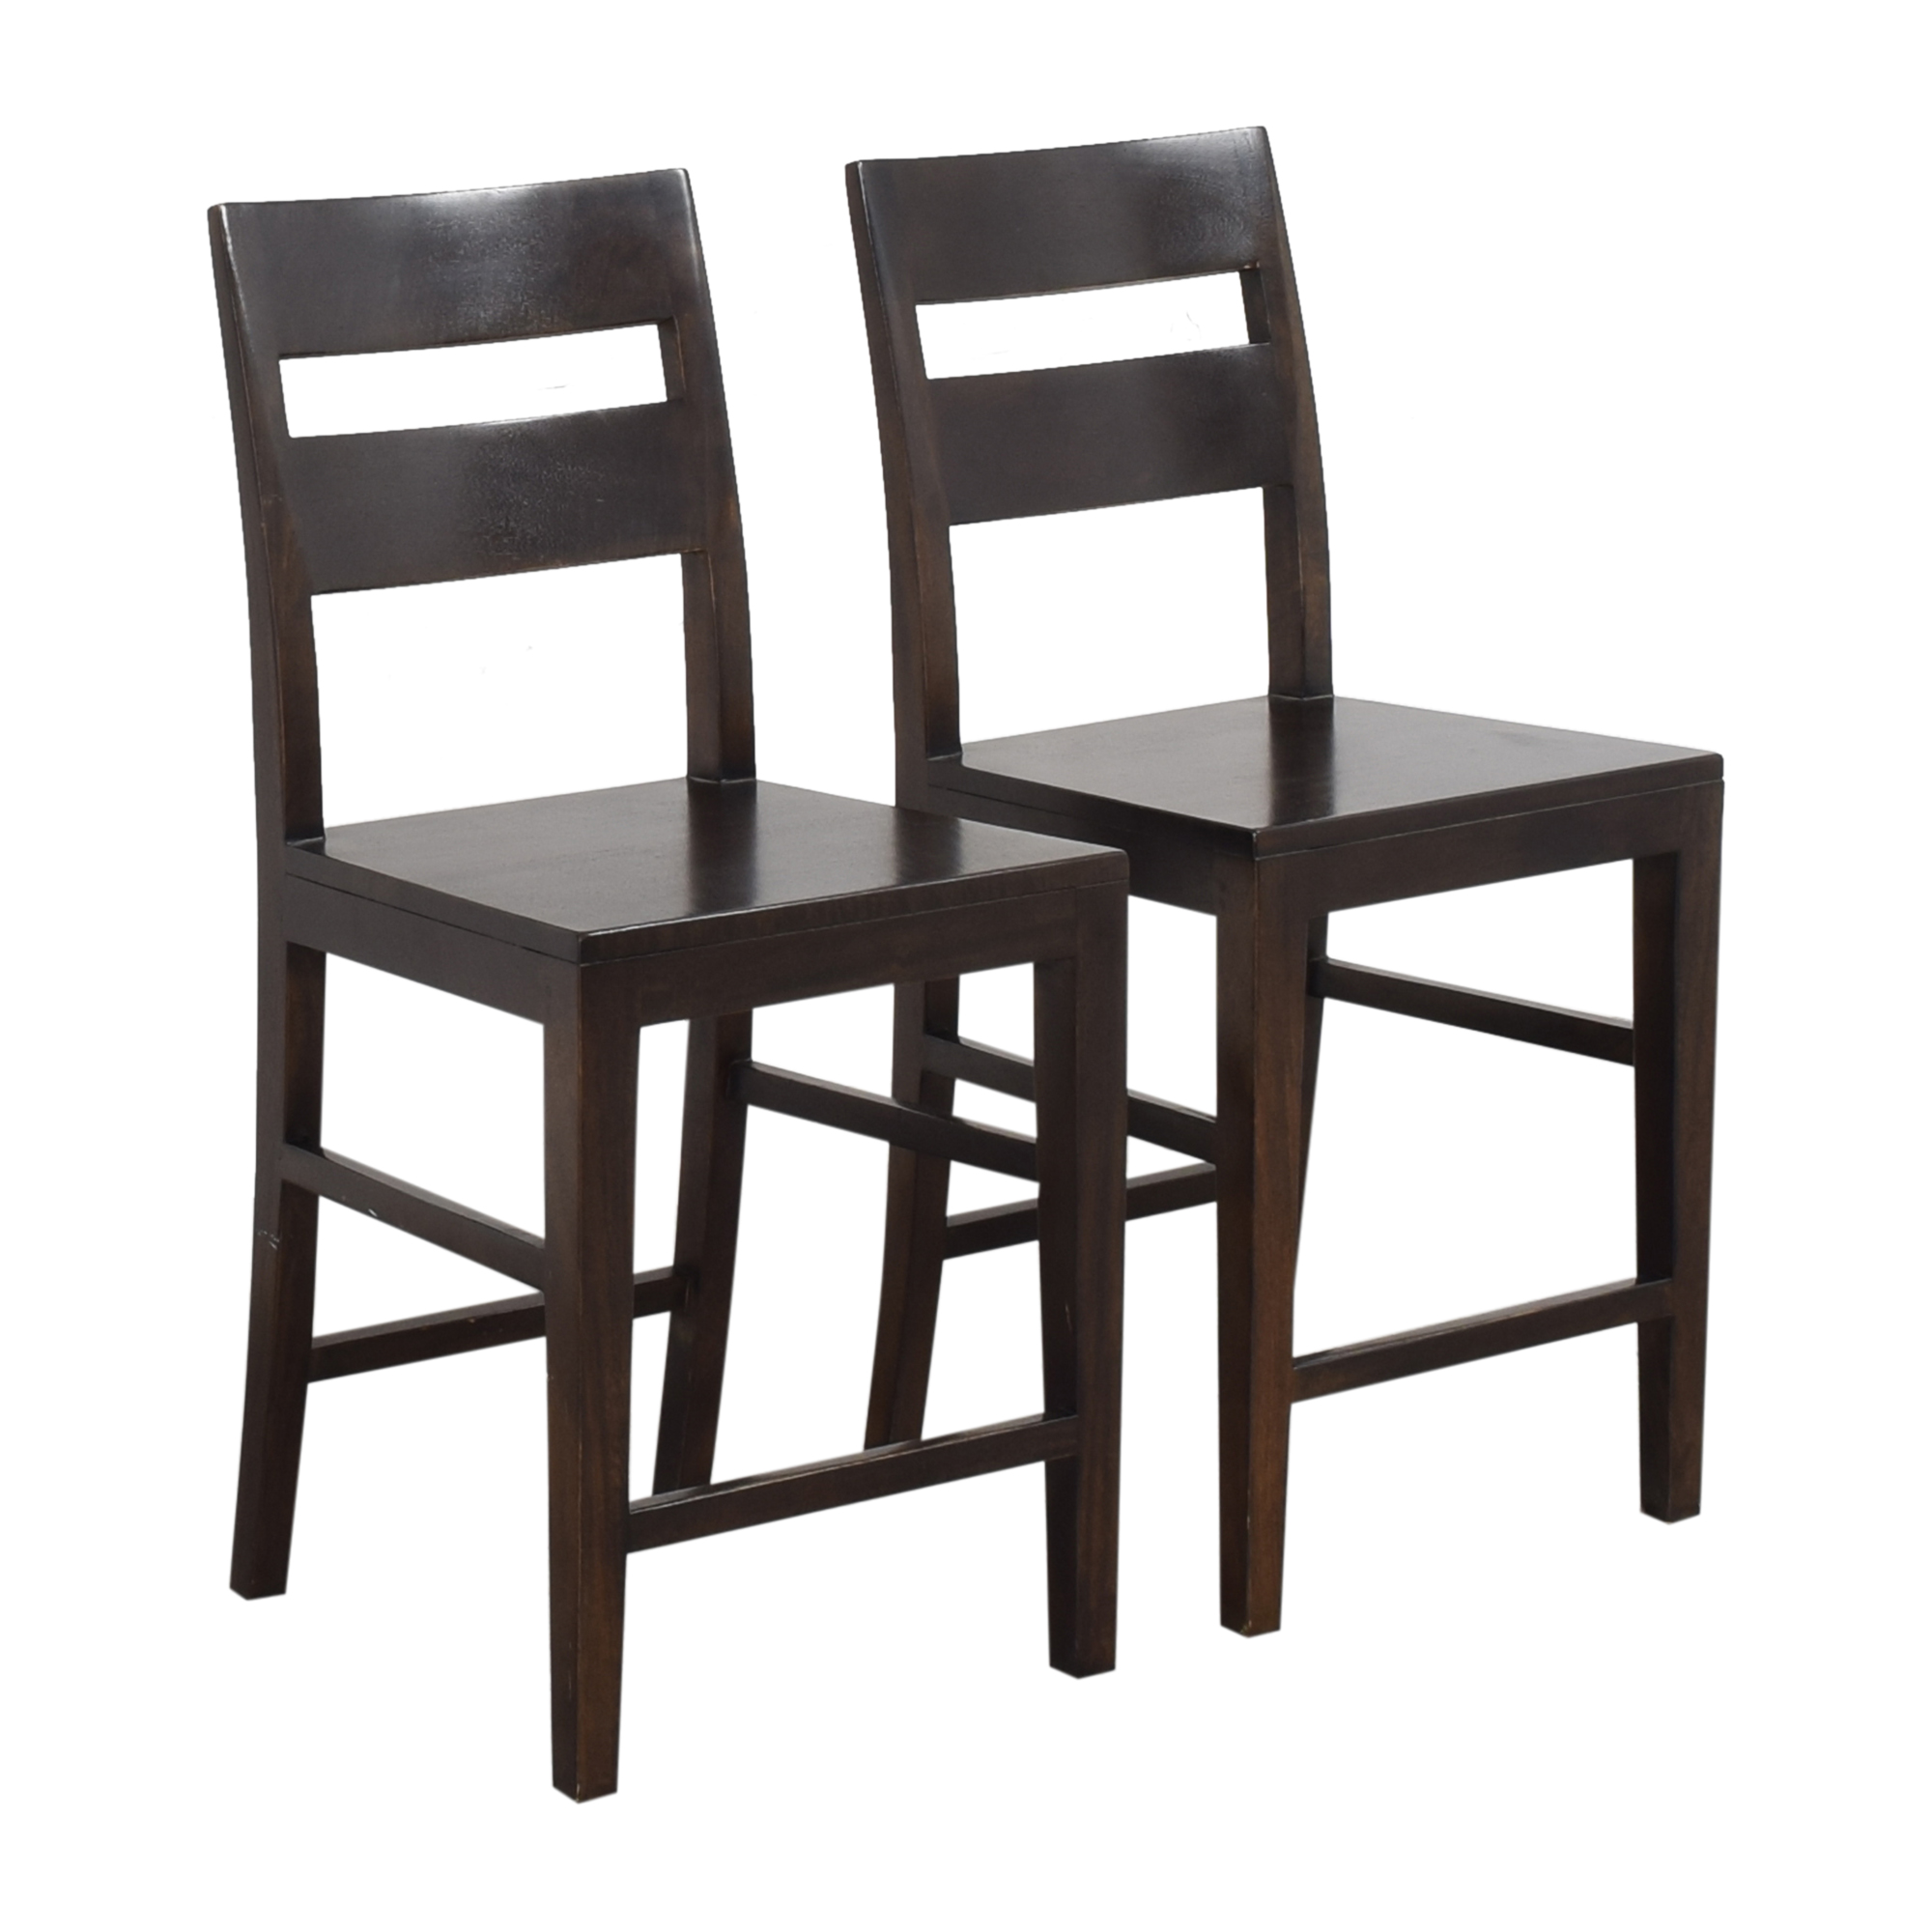 Crate & Barrel Basque Counter Stools / Chairs